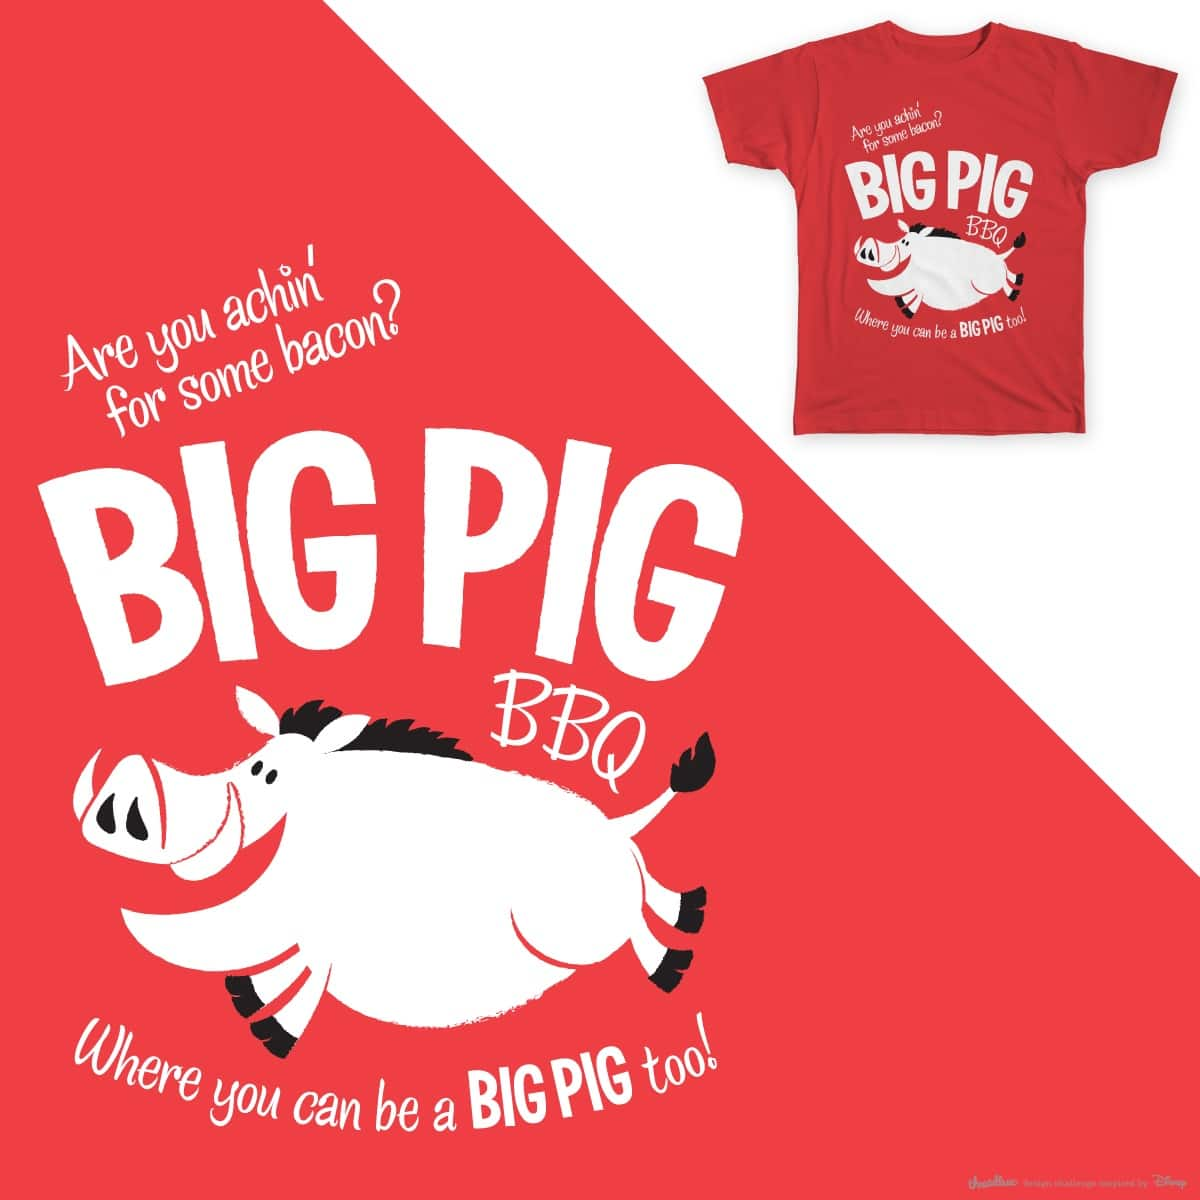 Achin' For Some Bacon by arutzen on Threadless